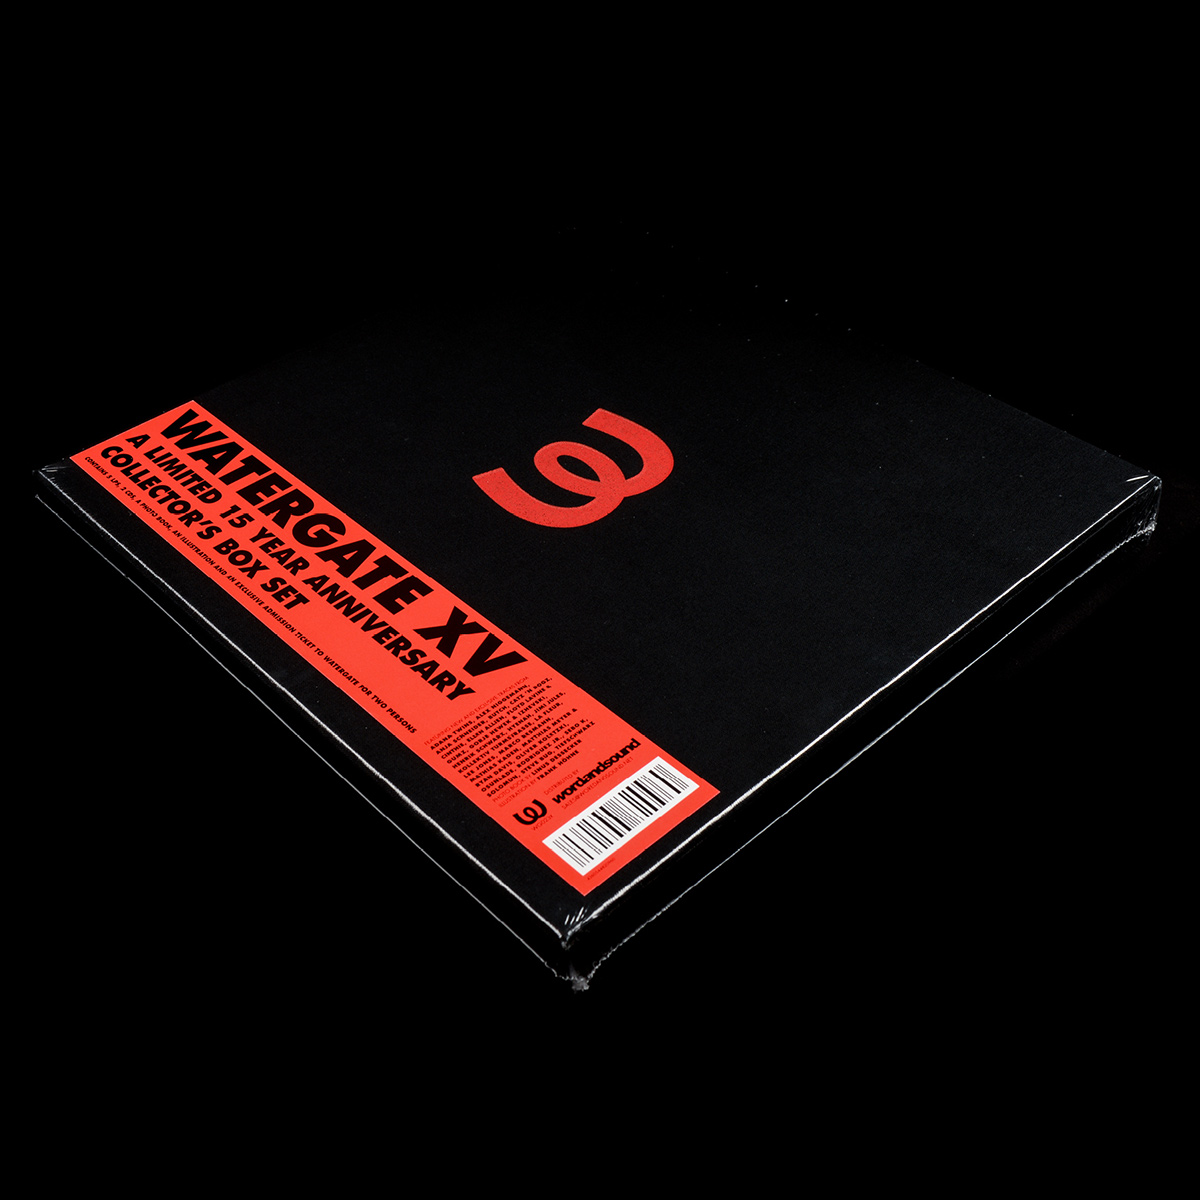 Watergate XV limited edition box set